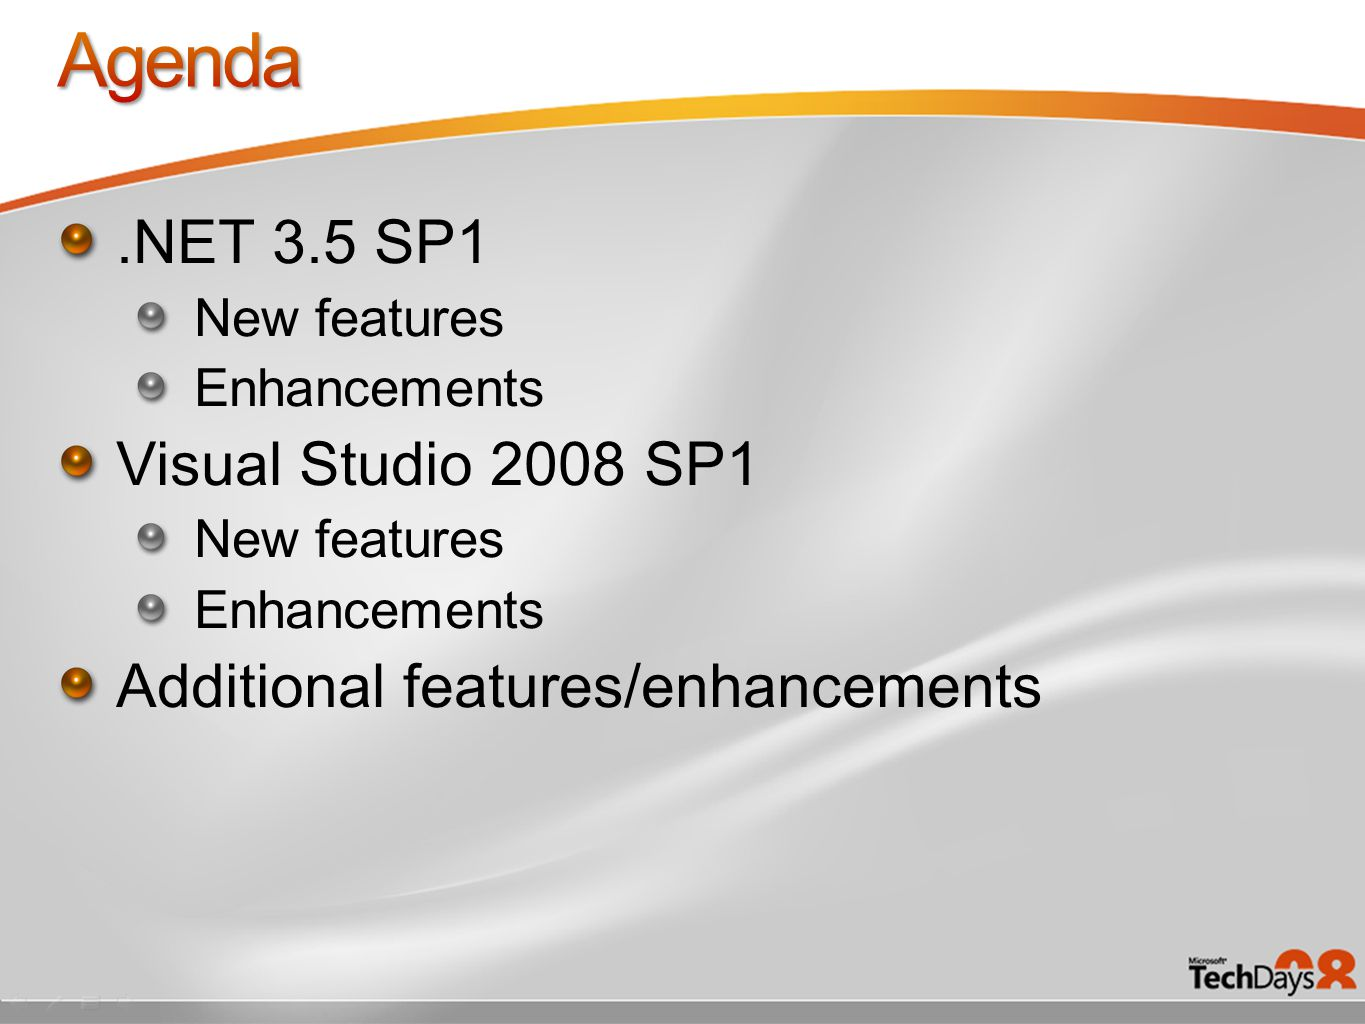 .NET 3.5 SP1 New features Enhancements Visual Studio 2008 SP1 New features Enhancements Additional features/enhancements